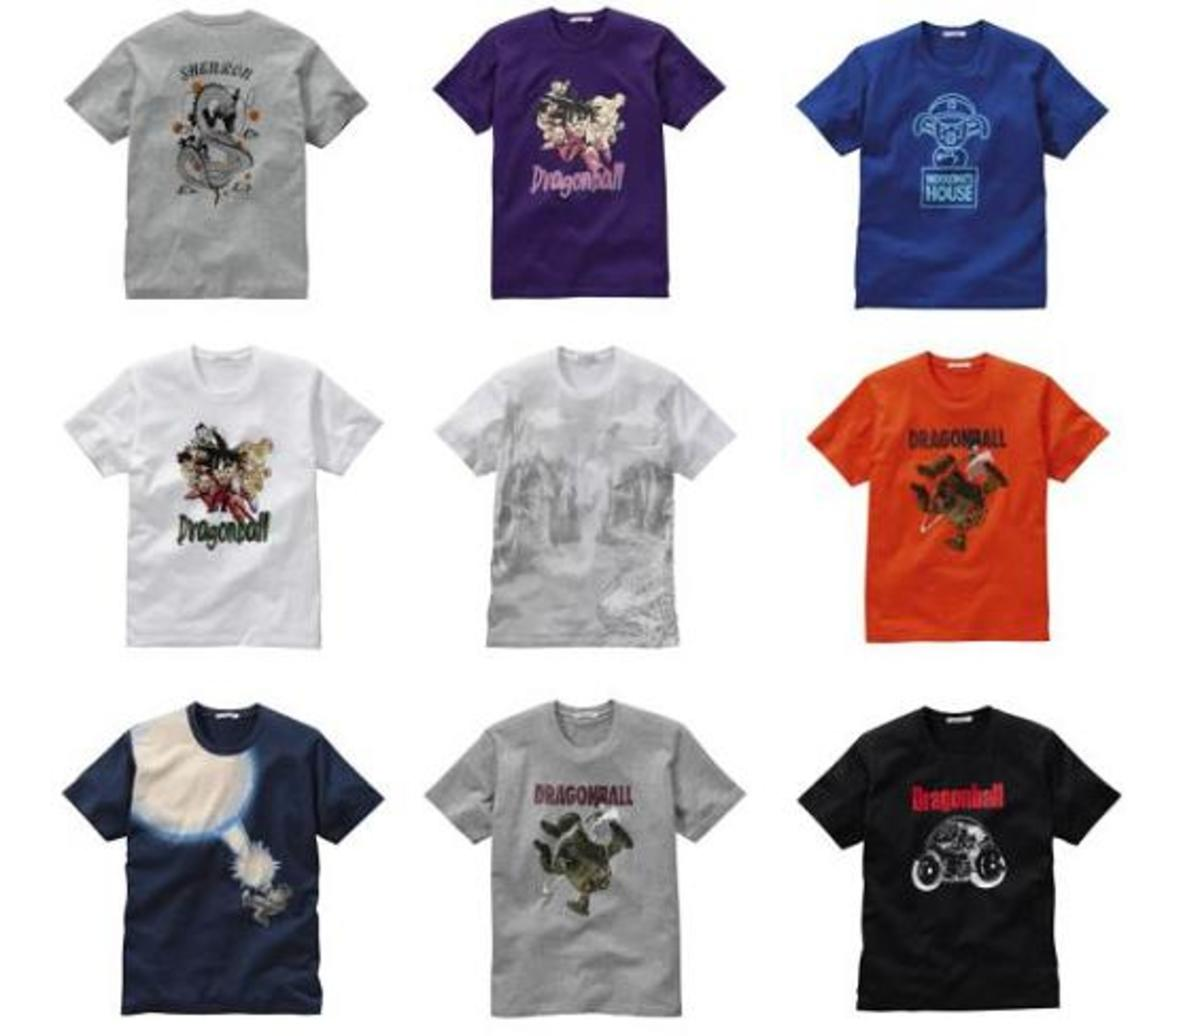 UNIQLO x Dragon Ball - T-Shirt Collection - 0